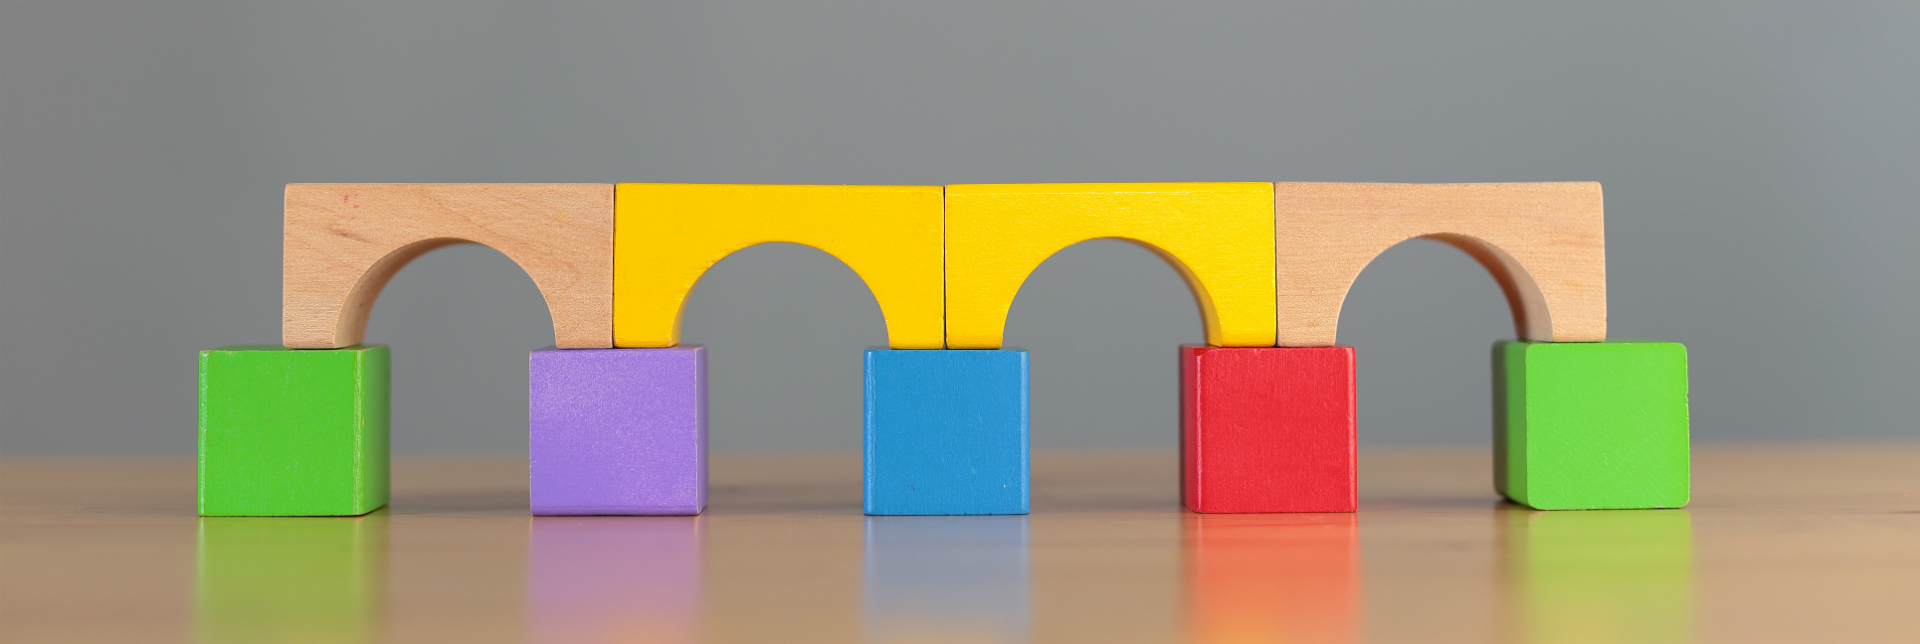 Bridge made of colorful building blocks